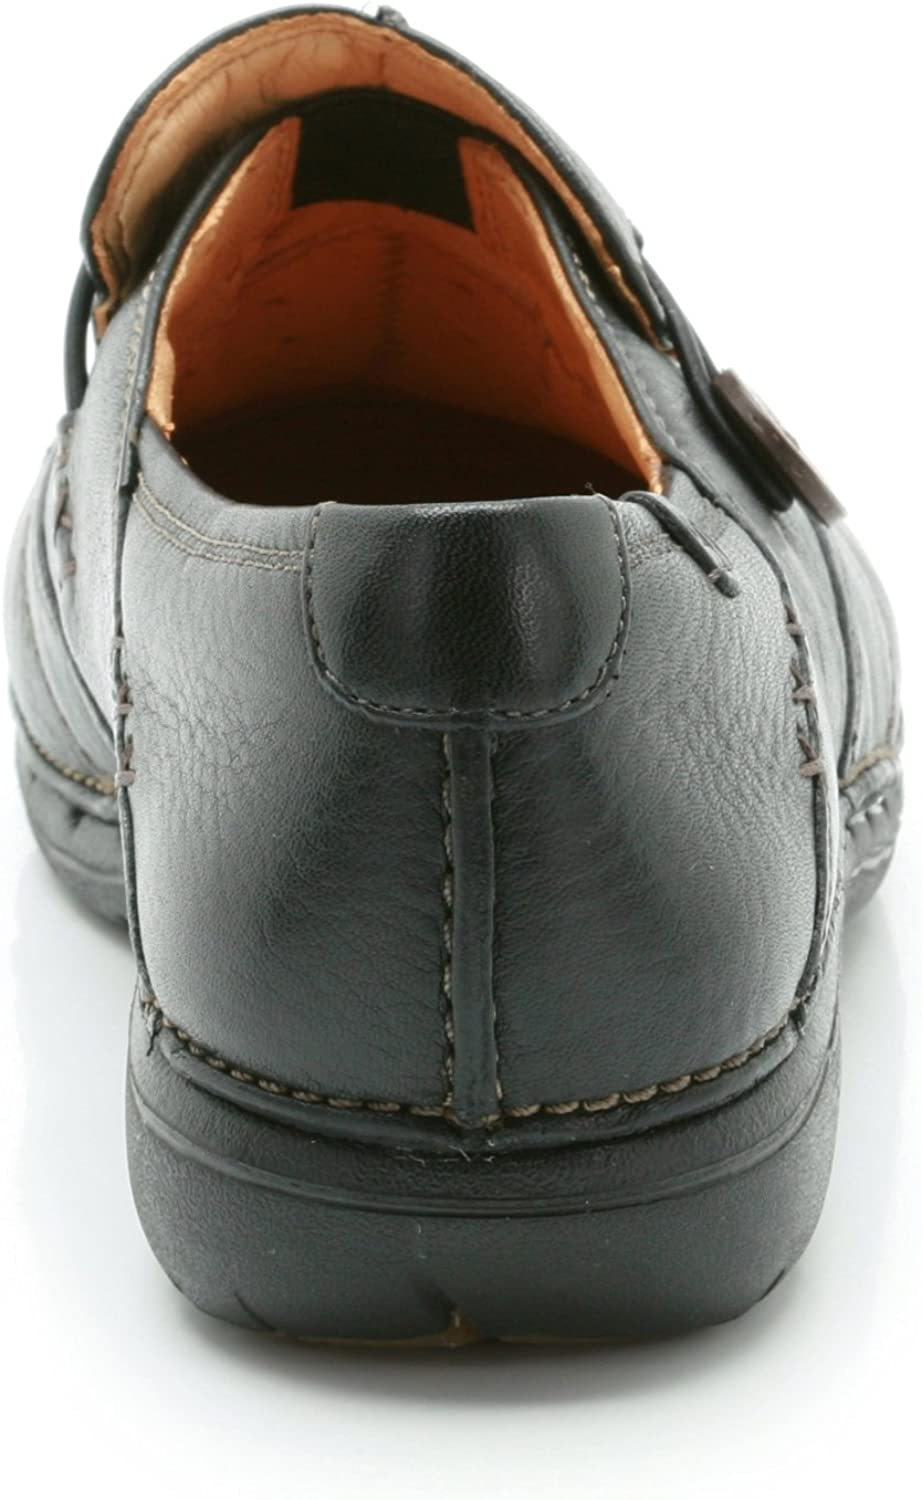 Clarks Womens Slip-On Flats Shoes Un Loop Black Leather